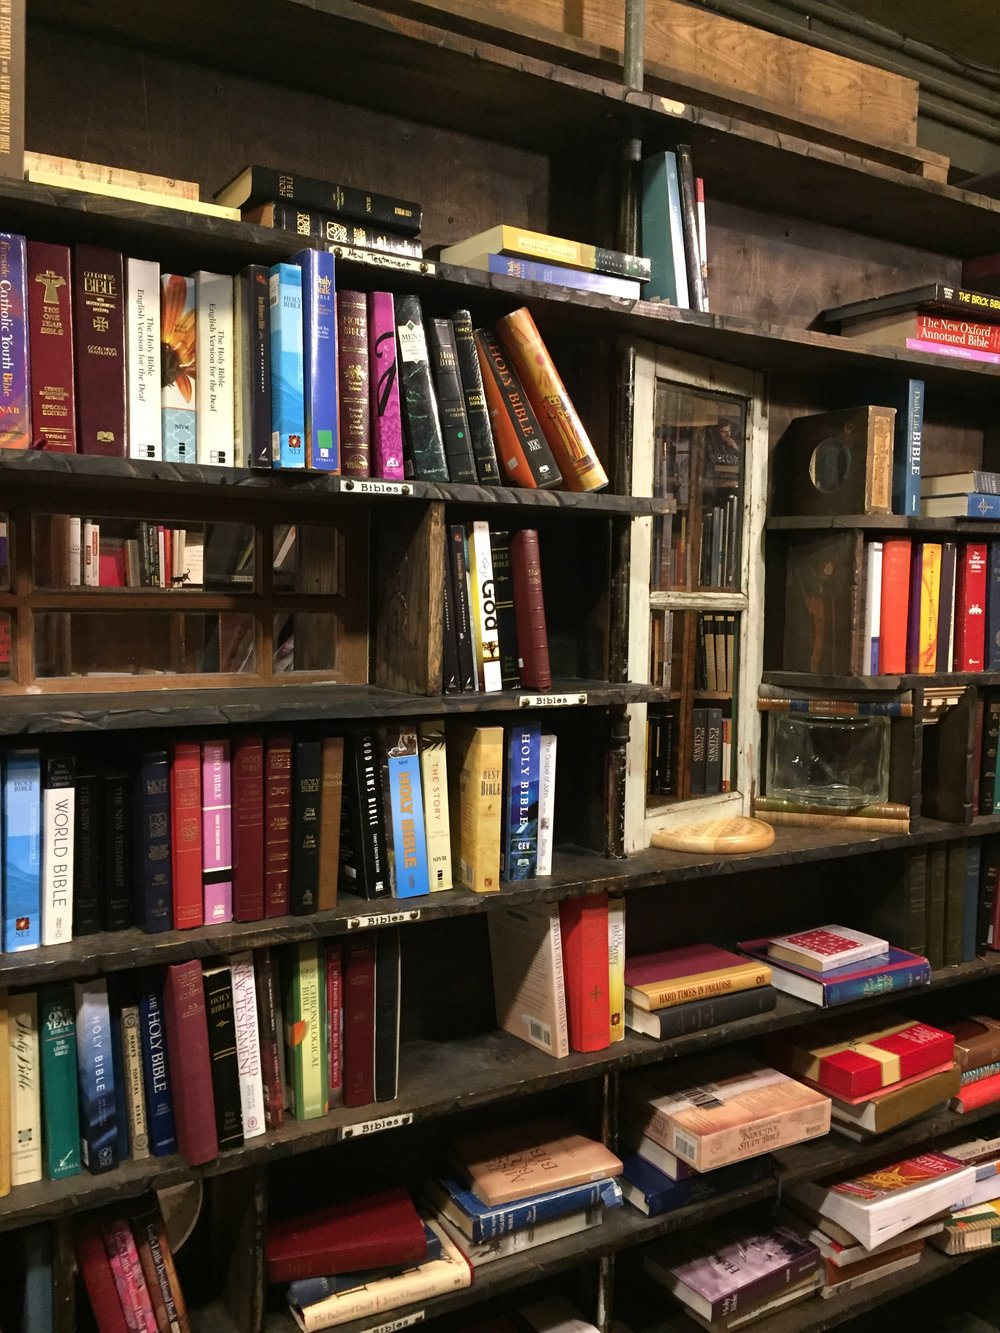 '[image description: A bookshelf with a window built into it. Just one of the many artistic touches in The Last Bookstore.]